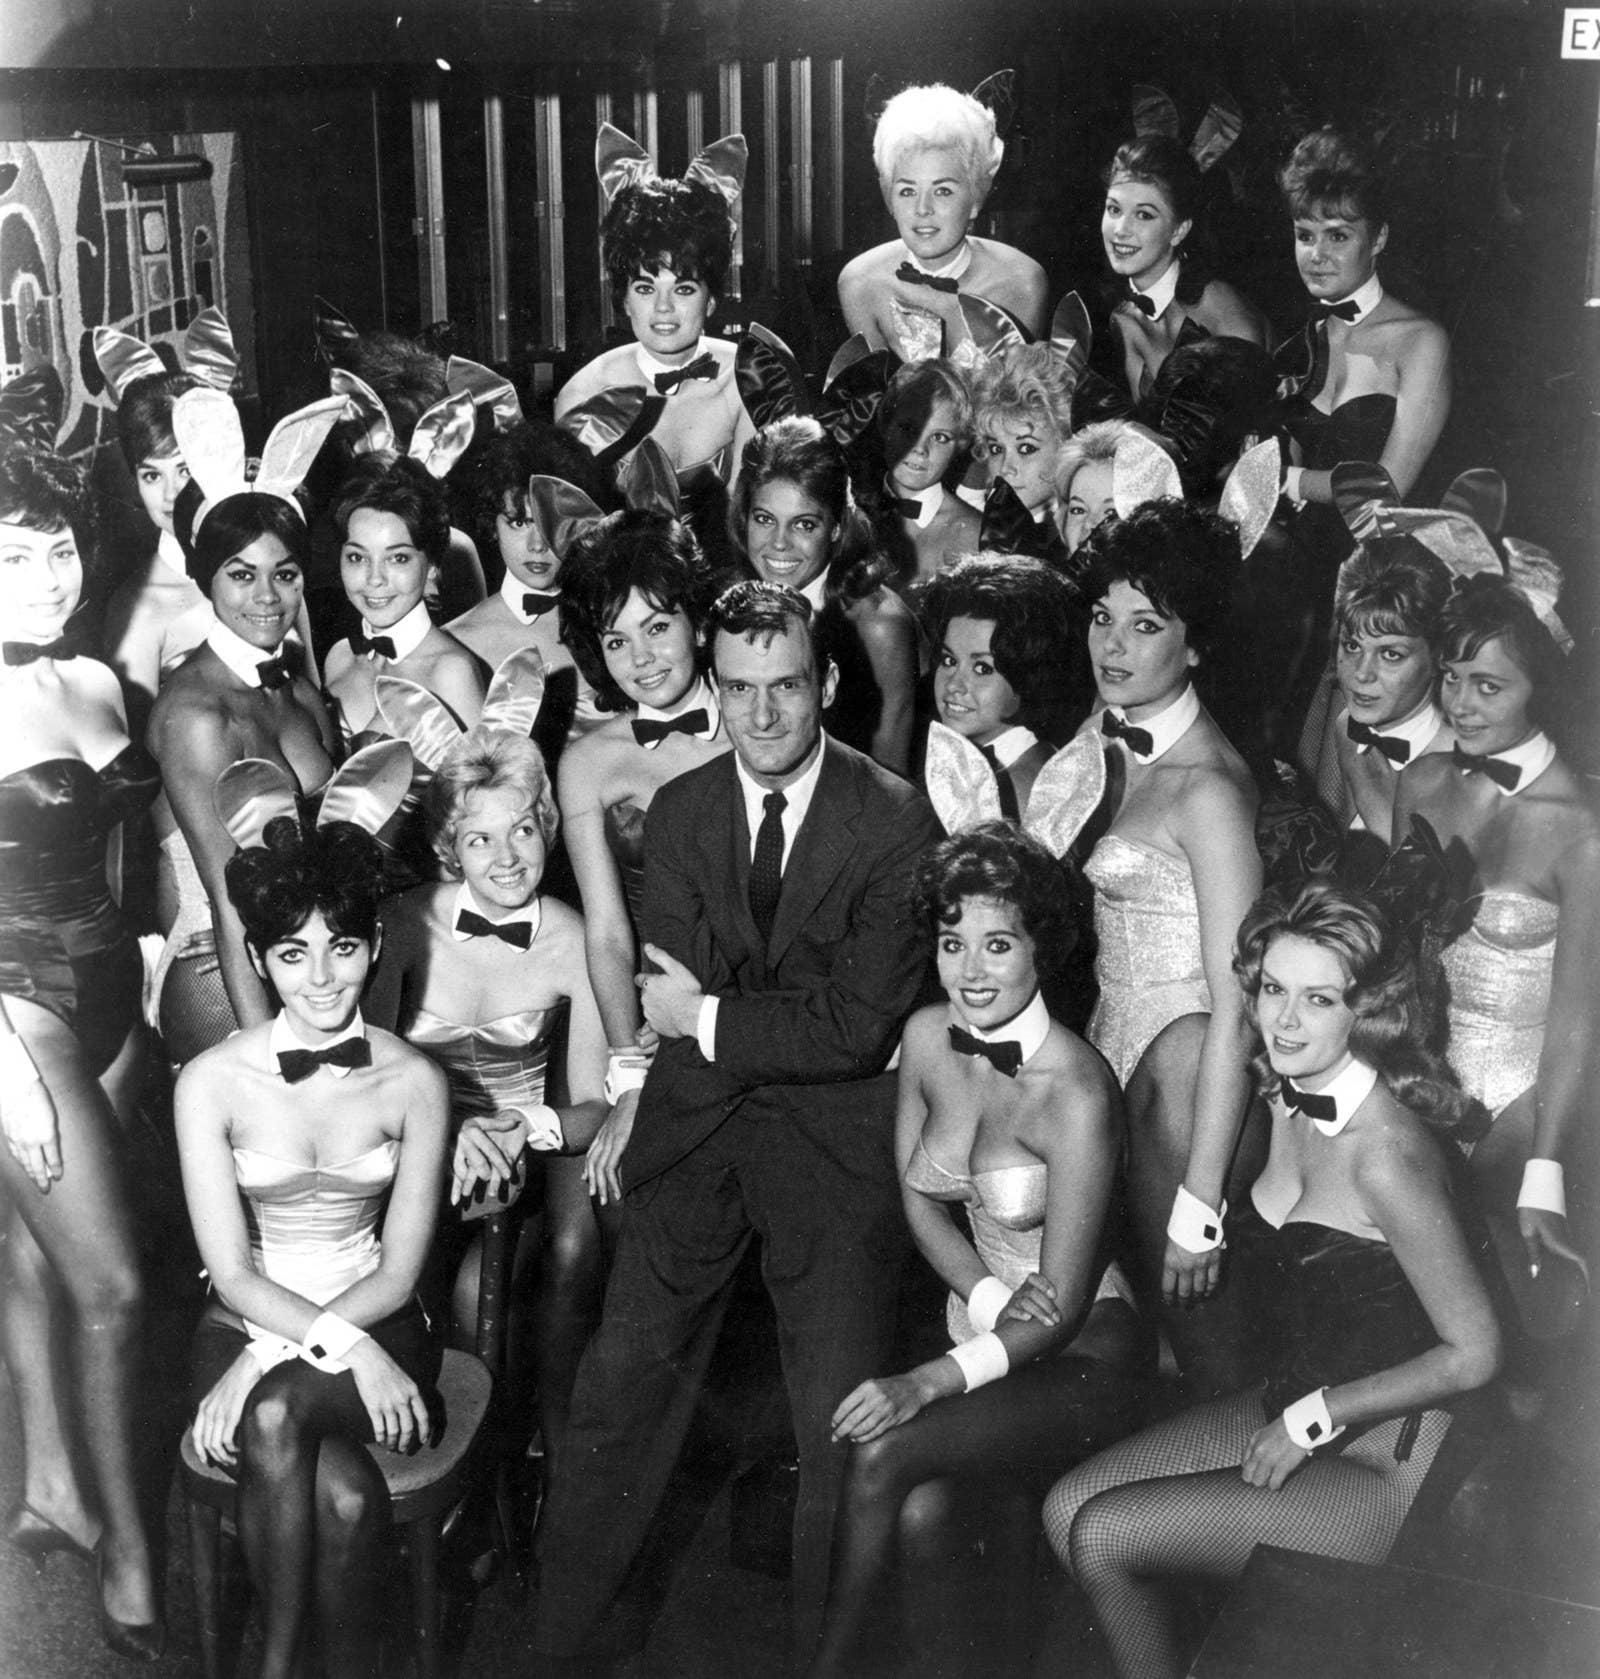 Millionaire publisher of Playboy magazine Hugh Hefner poses with Playmate Bunnies at one of his clubs in 1962.